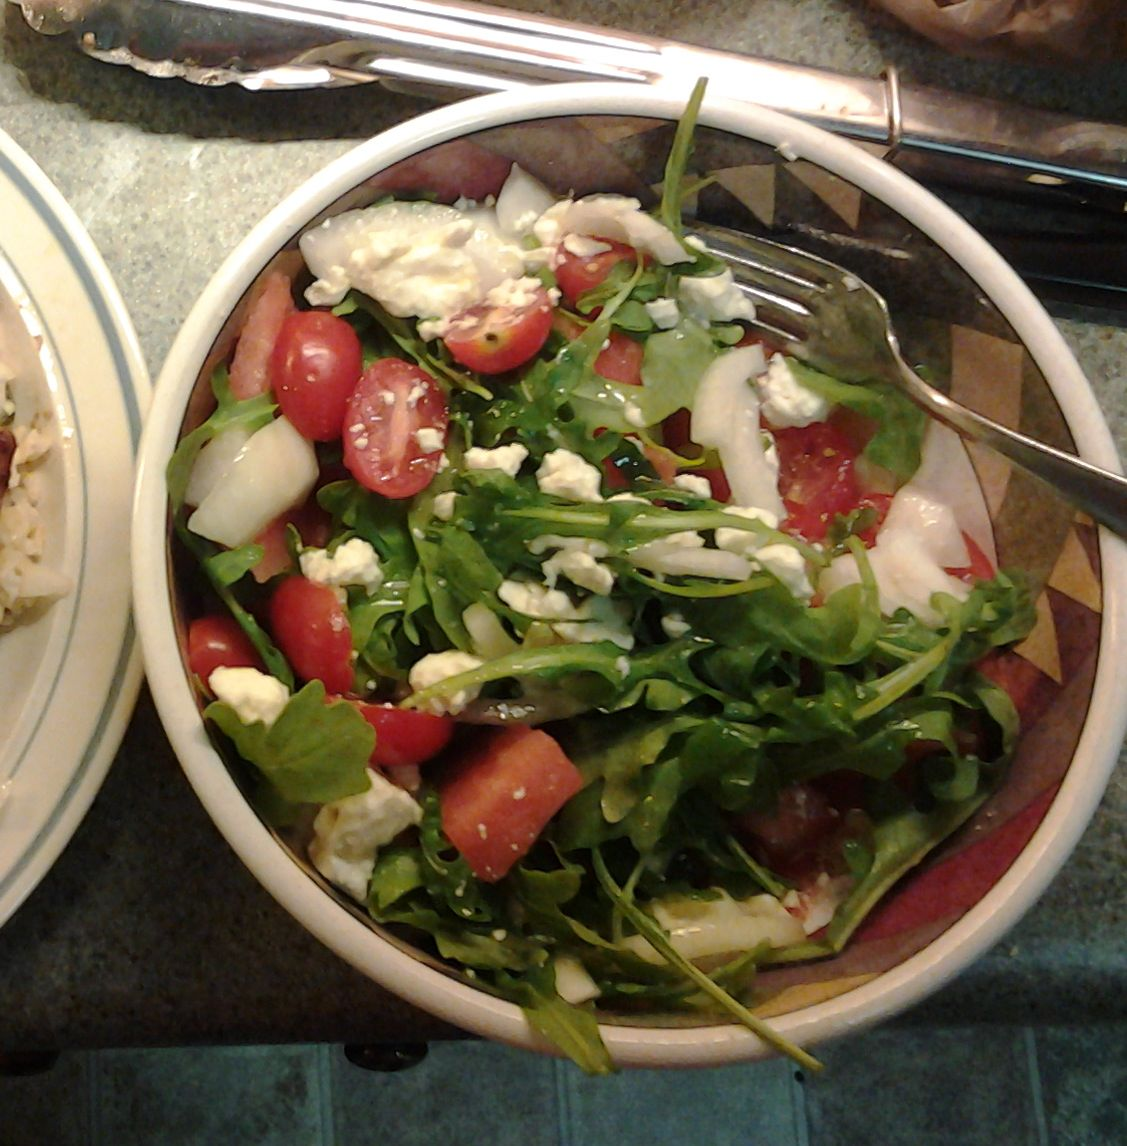 Watermelon Avocado Salad with Feta Cheese premii bet at home mobilna free-bet z bet at home